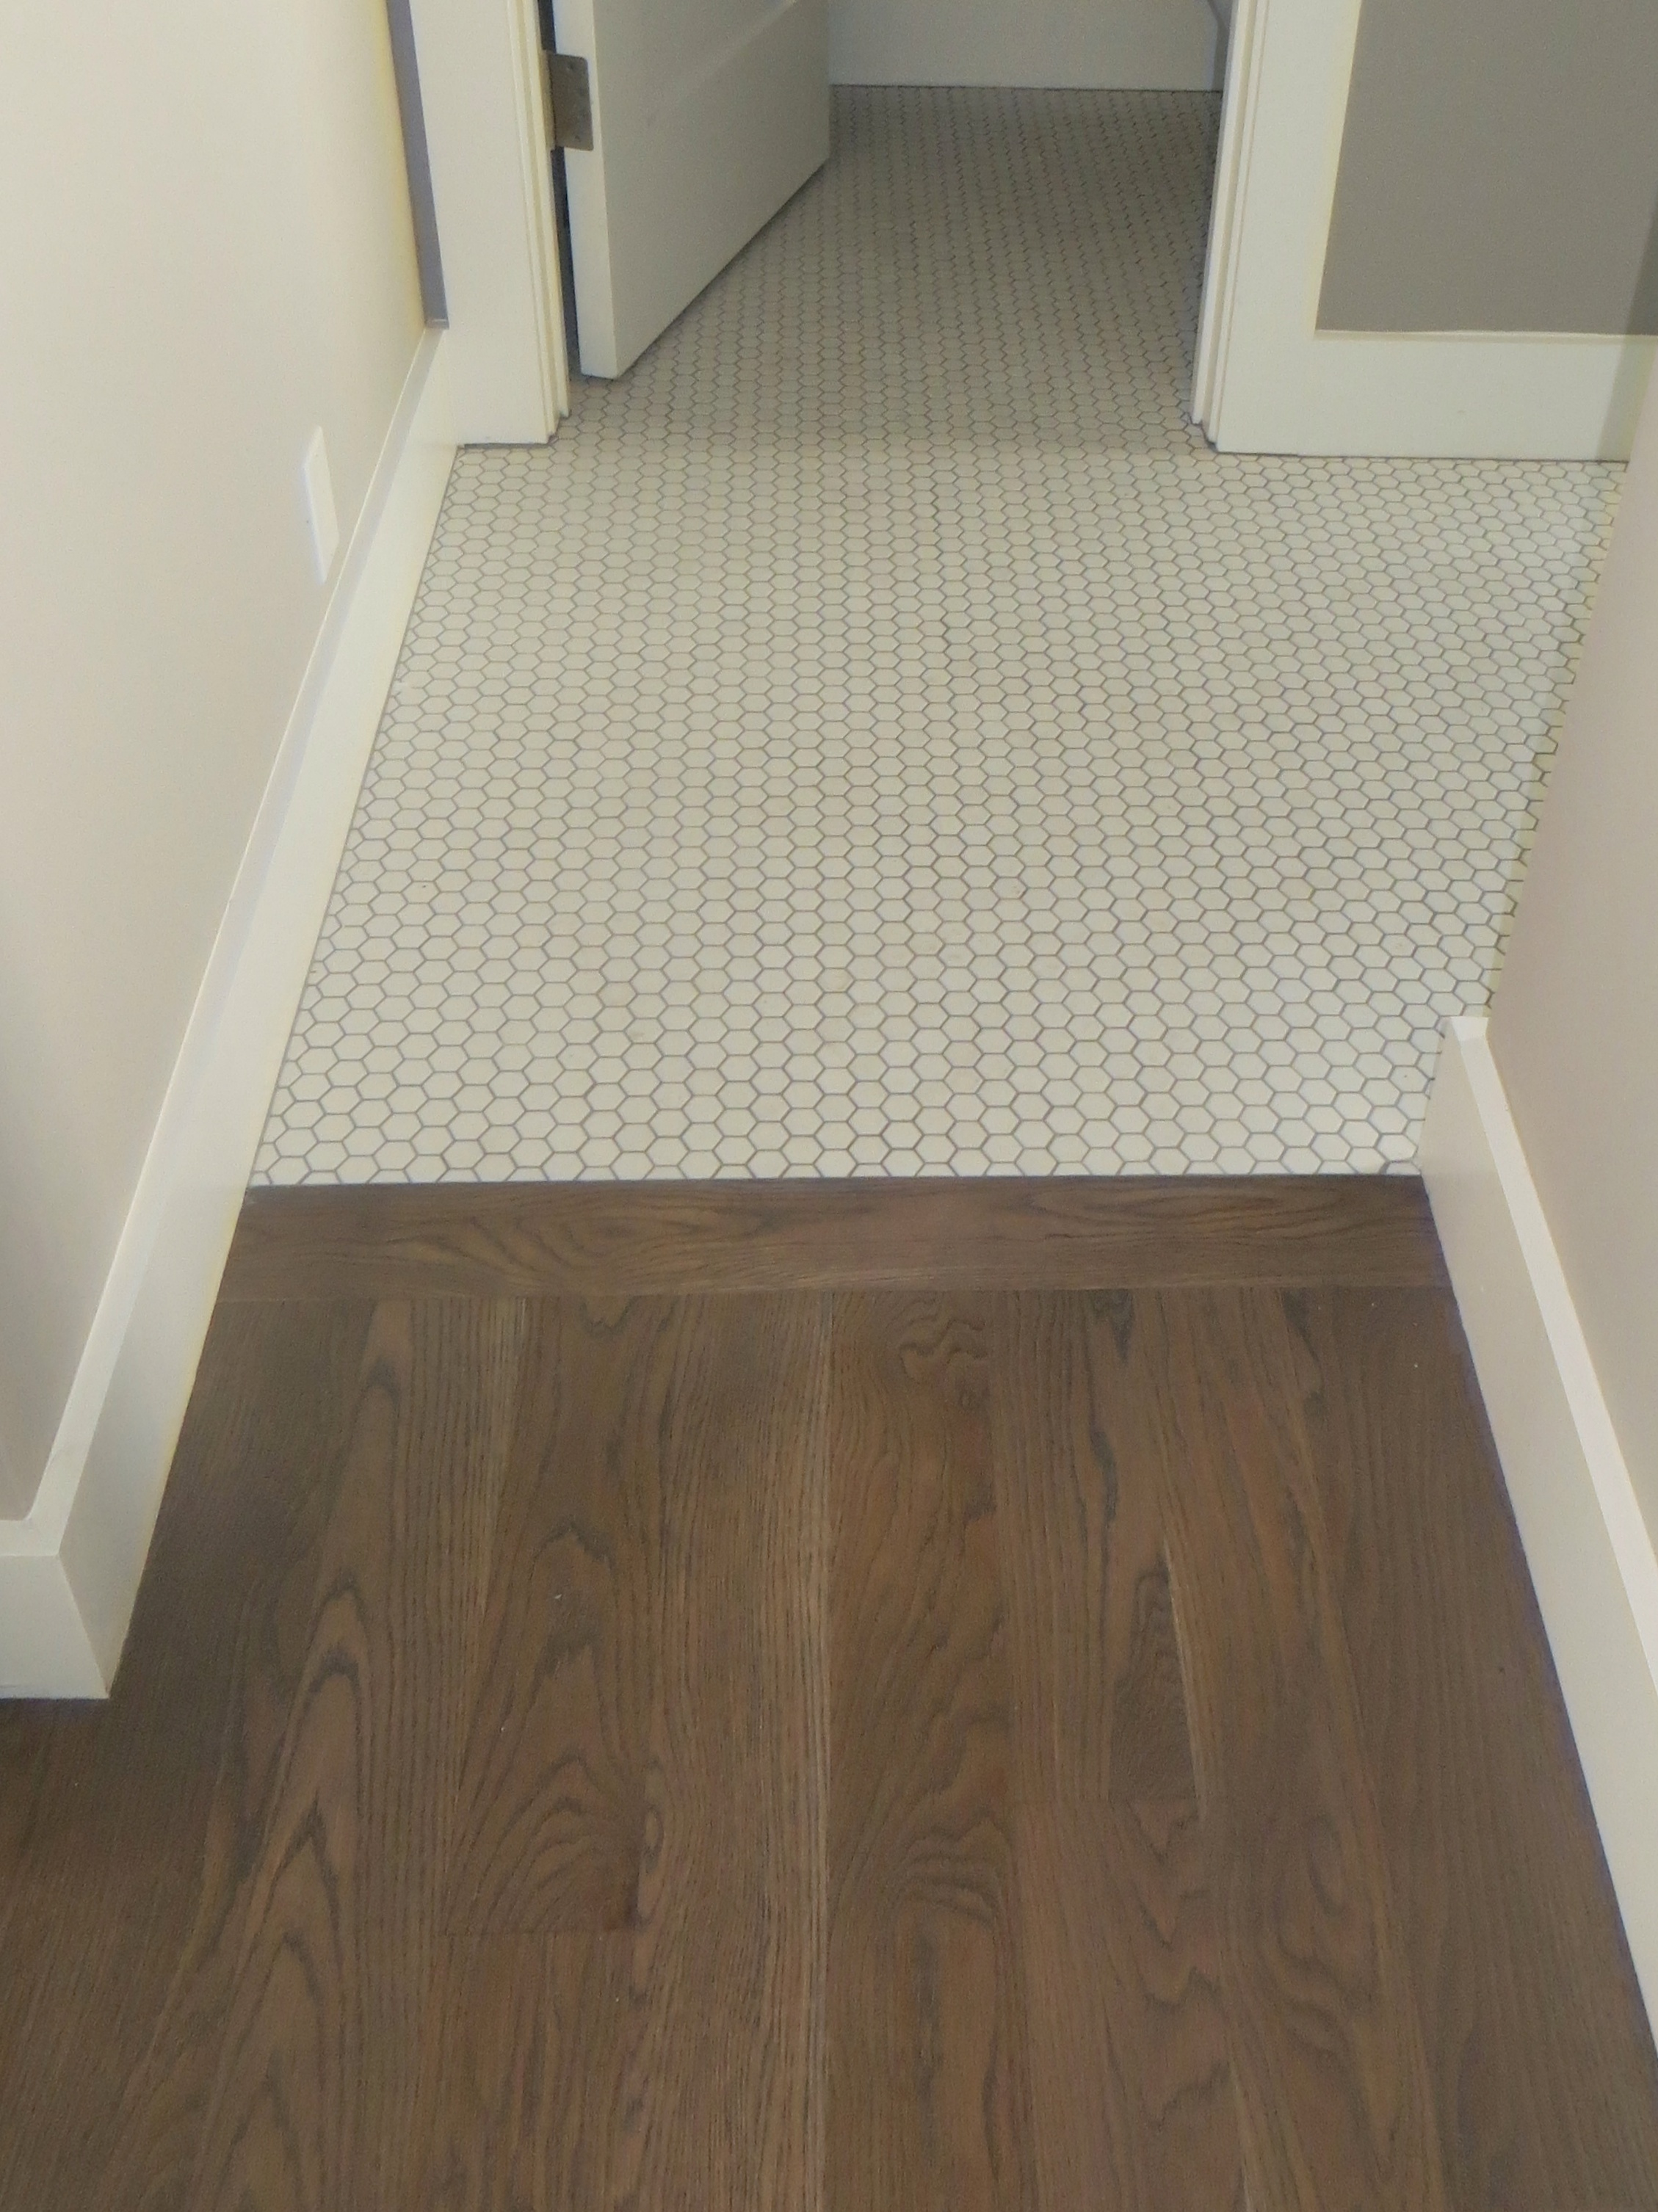 Floor to Tile.jpg